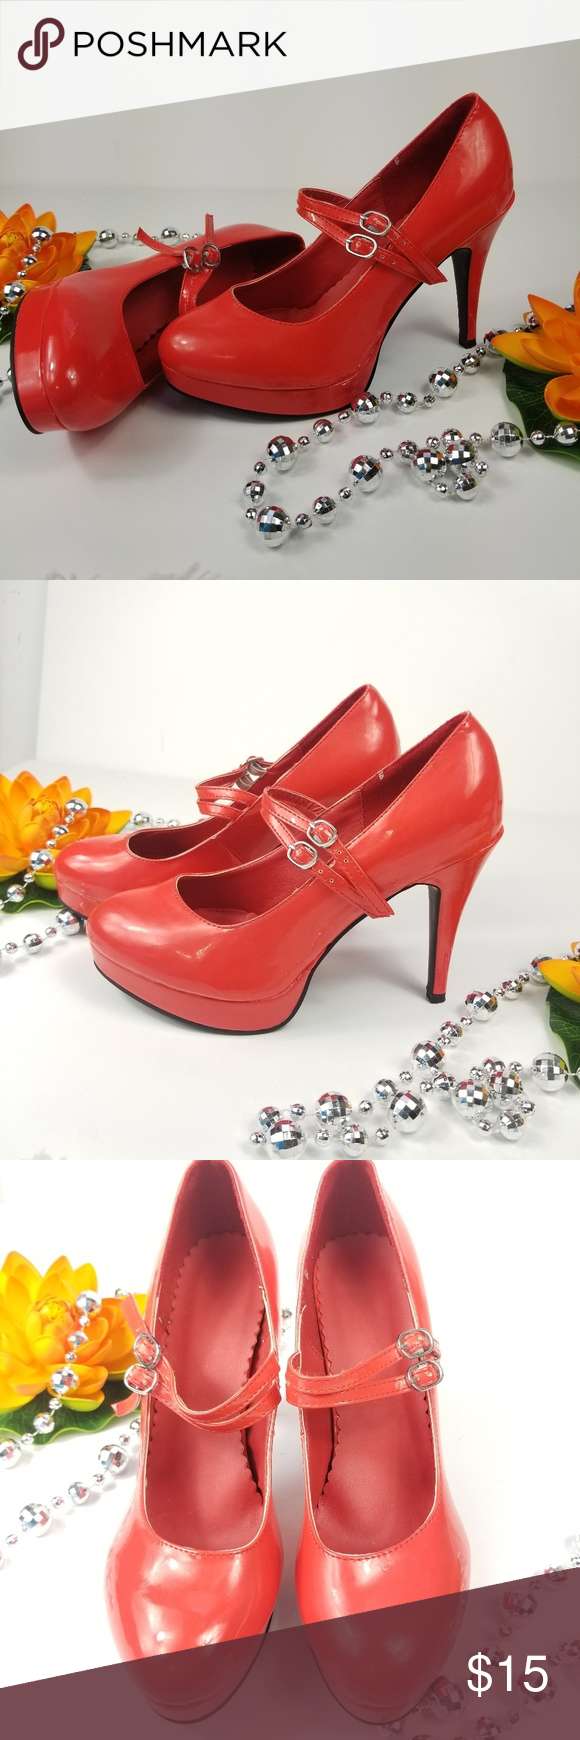 Red platform heels whit double strap size 7/8 M Red platform heels  whit double …